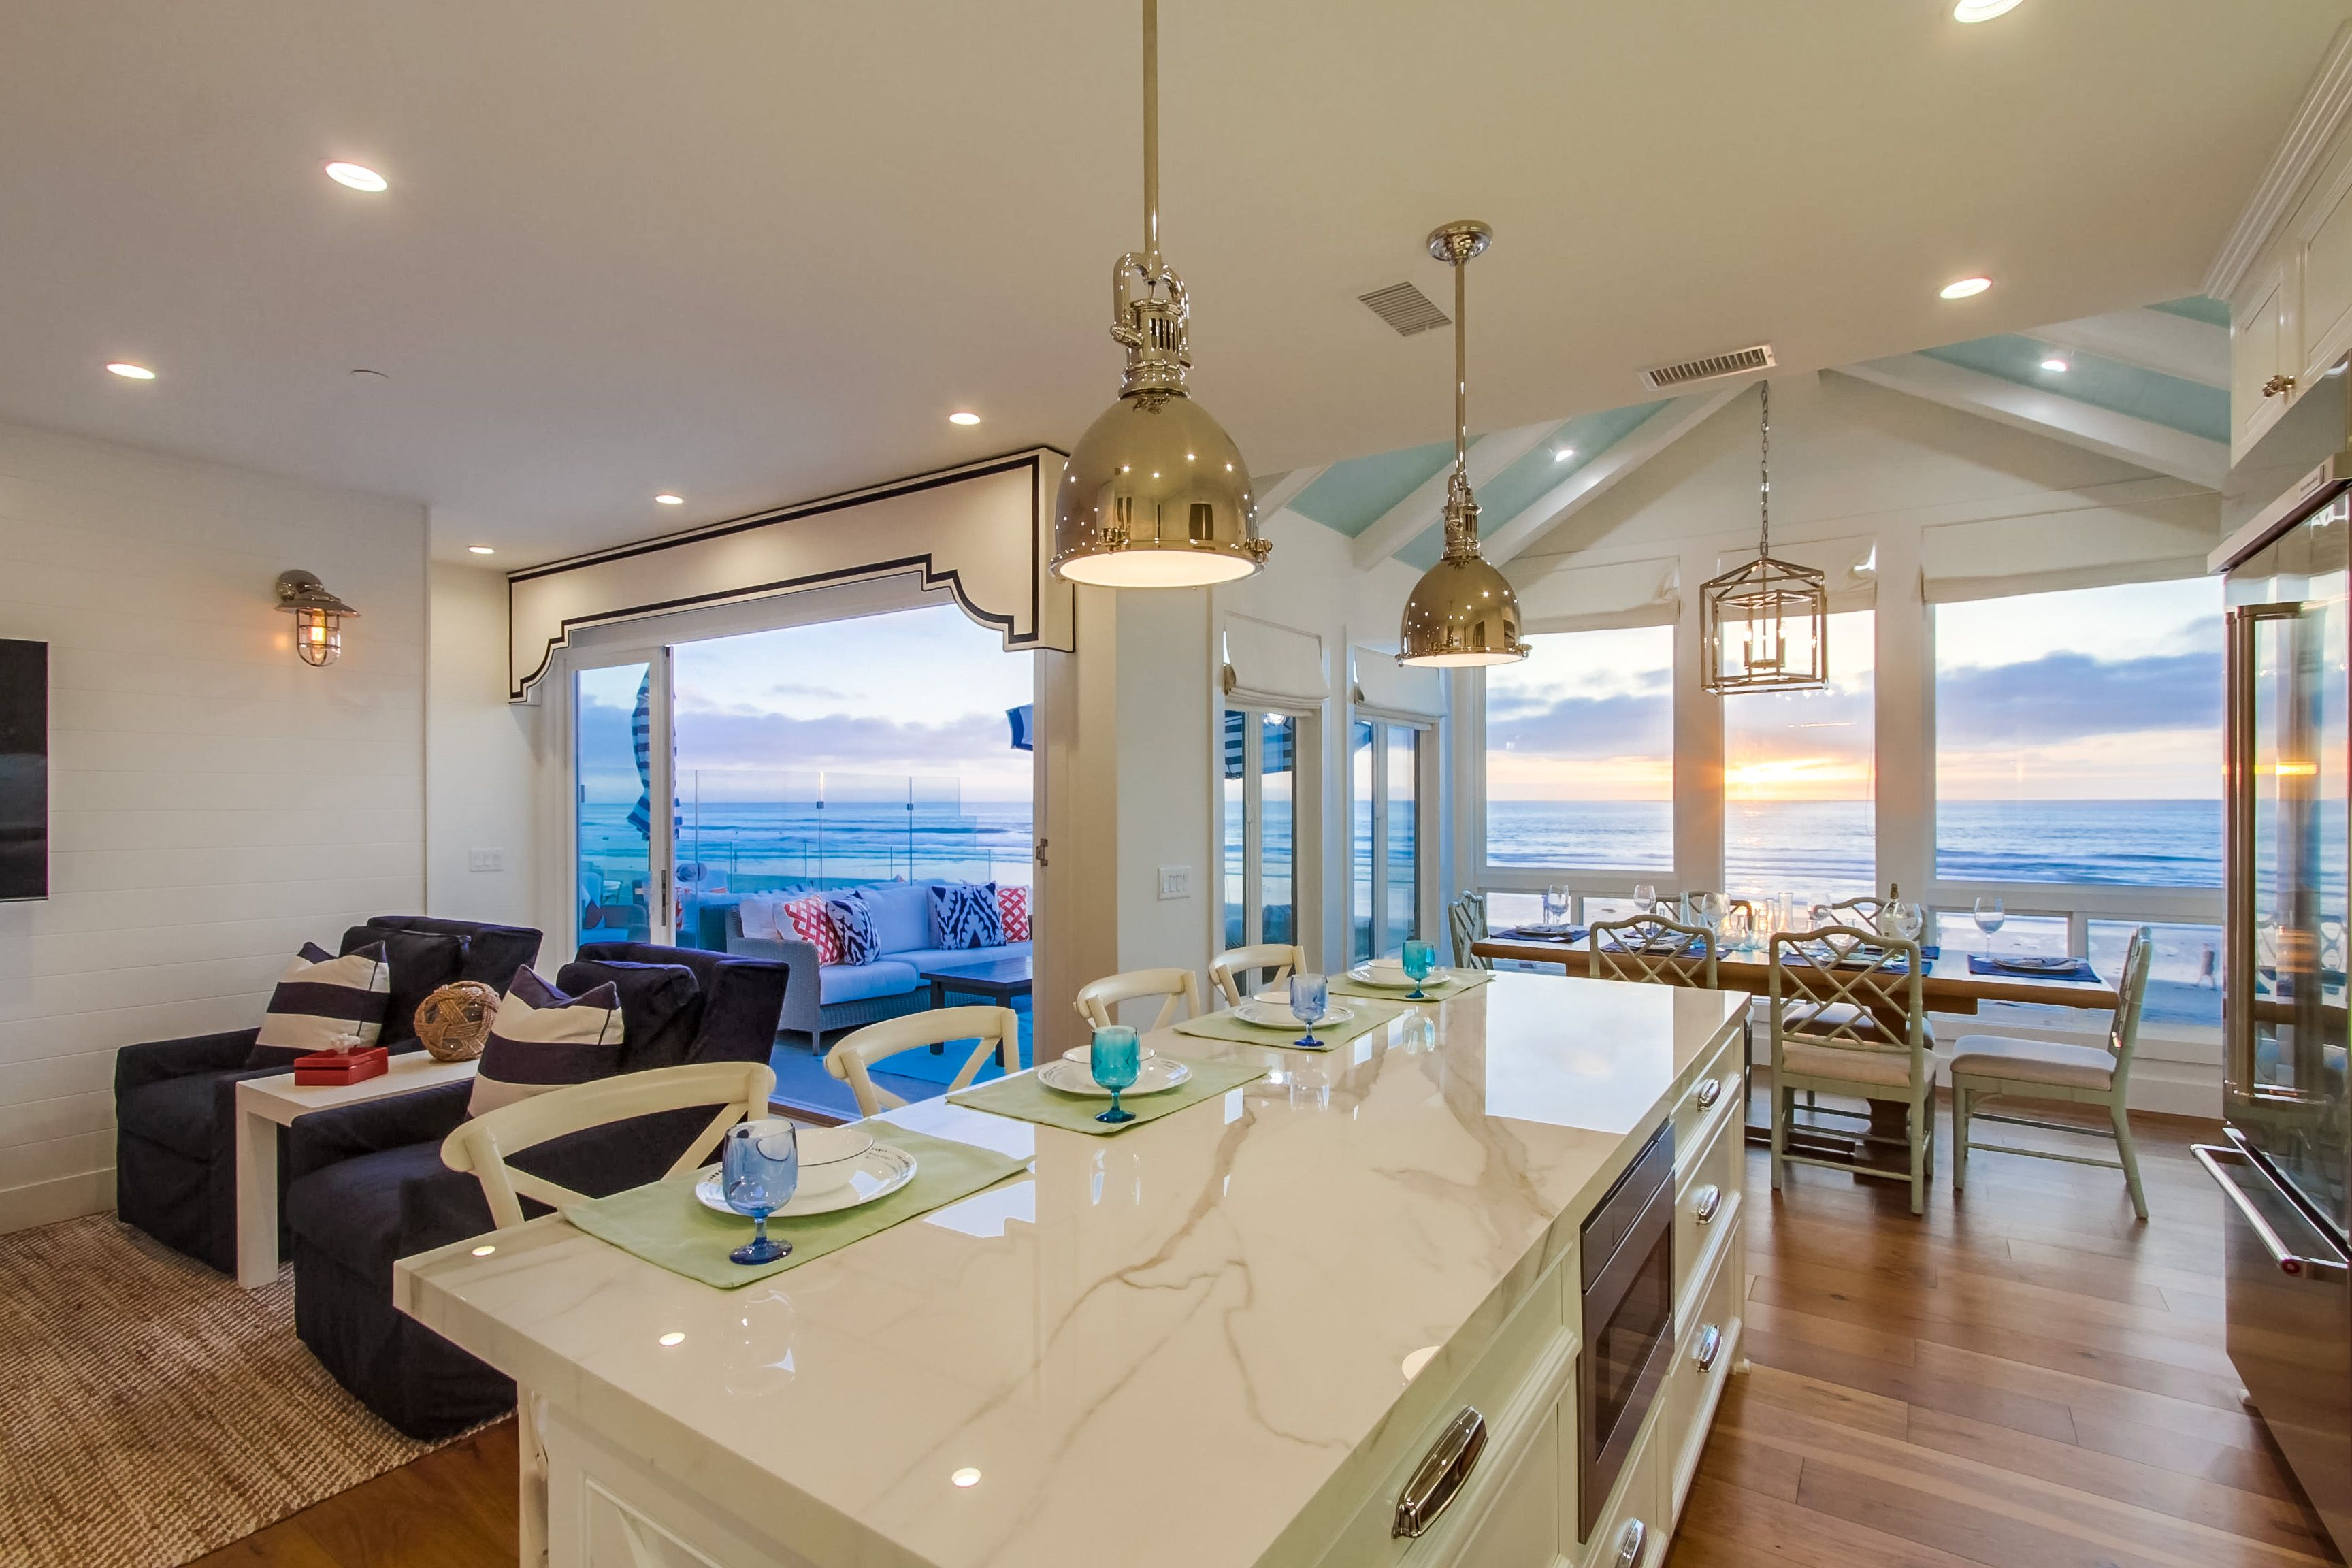 Astonishing San Diego Beach House Vacation Rental By Bluewater Vacation Interior Design Ideas Gentotryabchikinfo